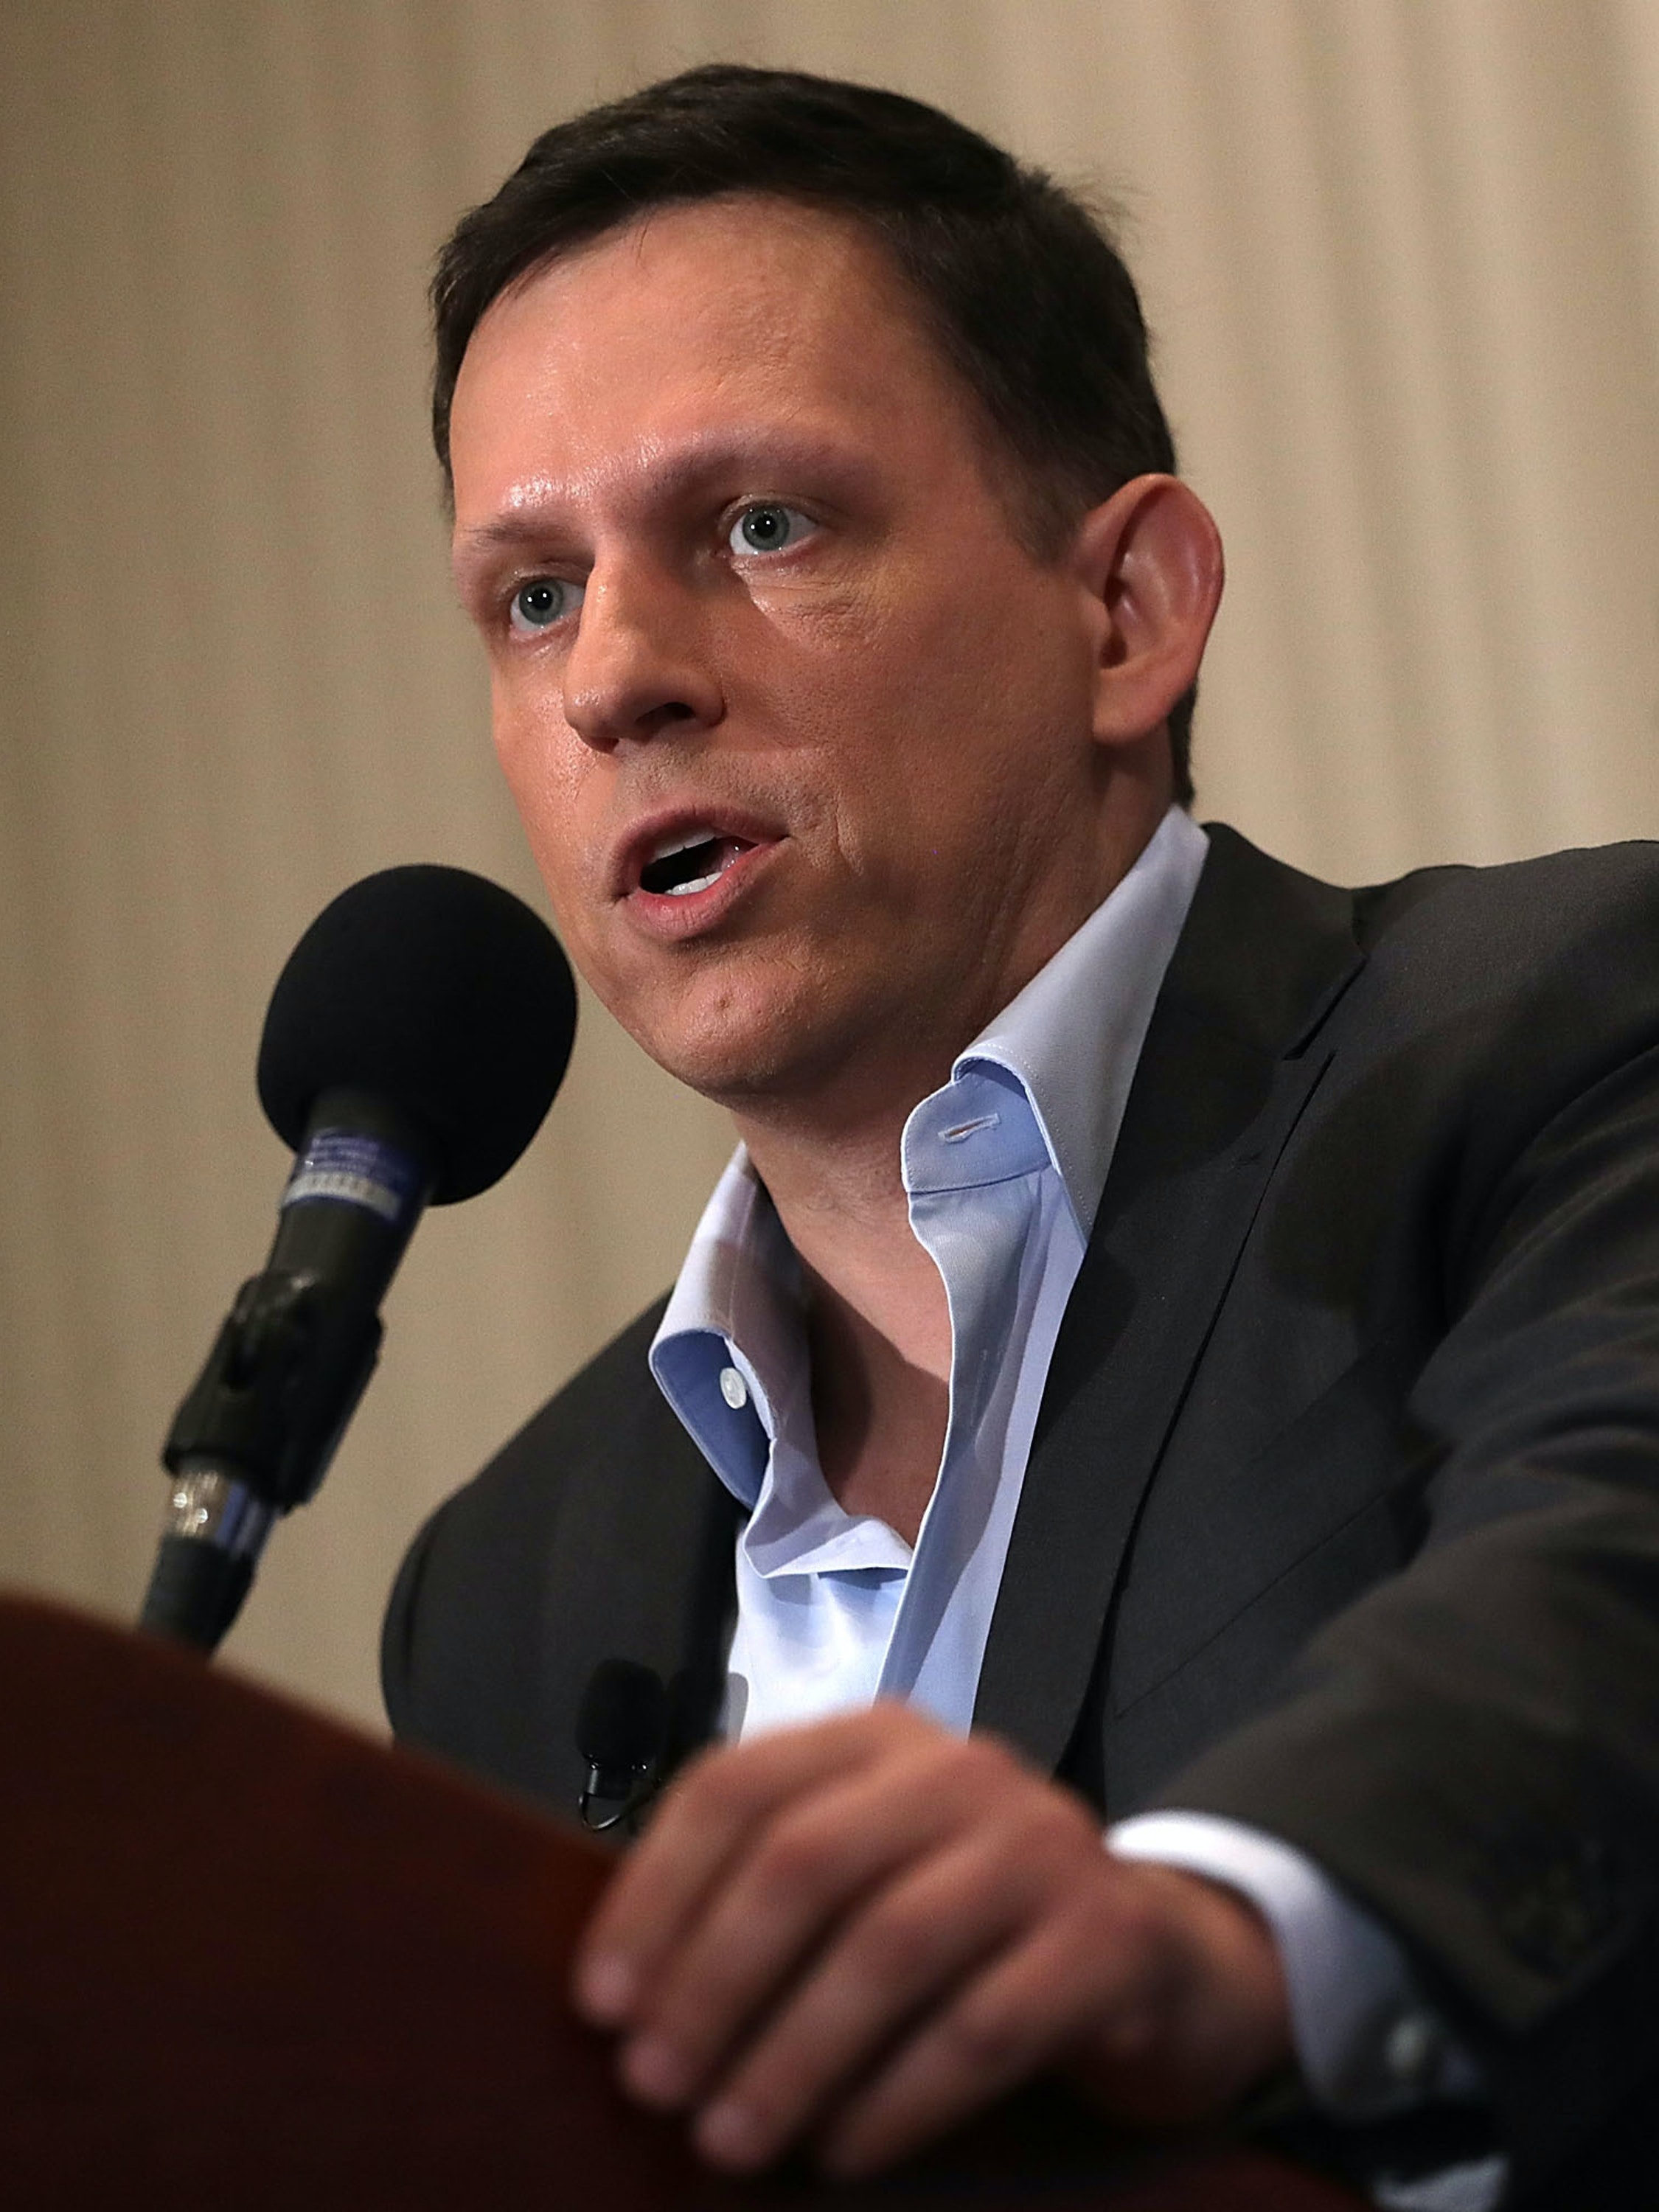 Entrepreneur Peter Thiel gives remarks at the National Press Club on October 31, 2016 in Washington, DC. Thiel discussed his support for Republican presidential nominee Donald Trump.